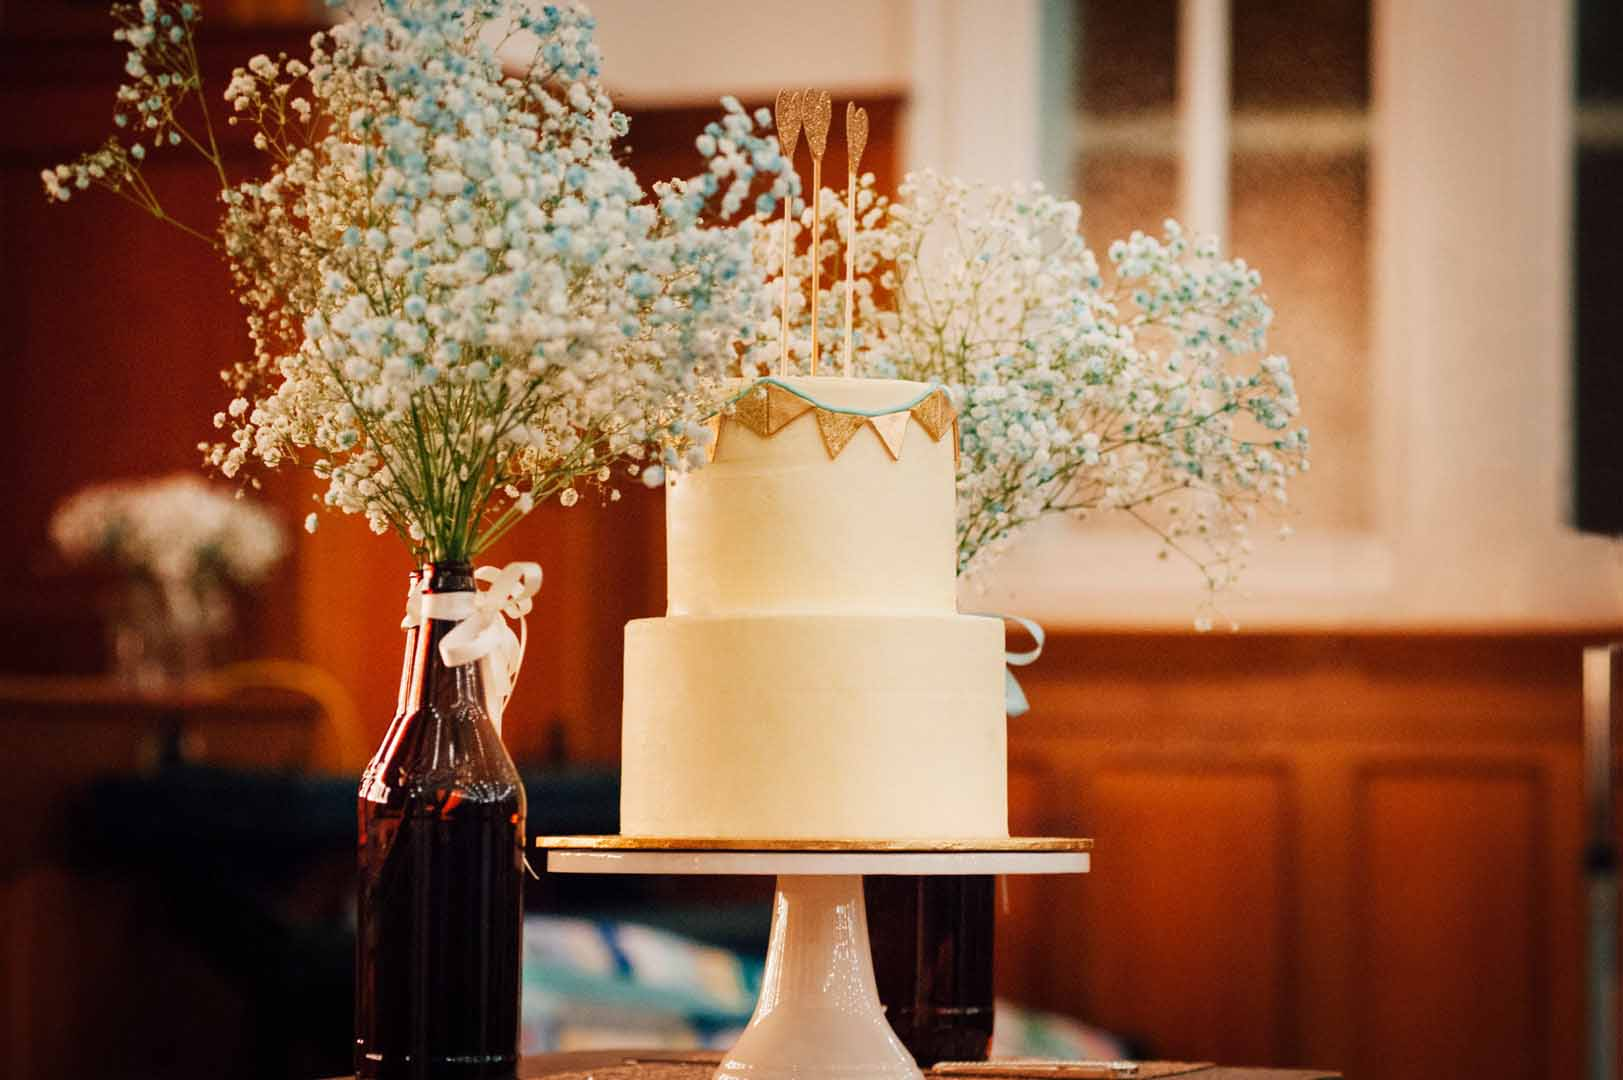 Wedding photography cake and flowers